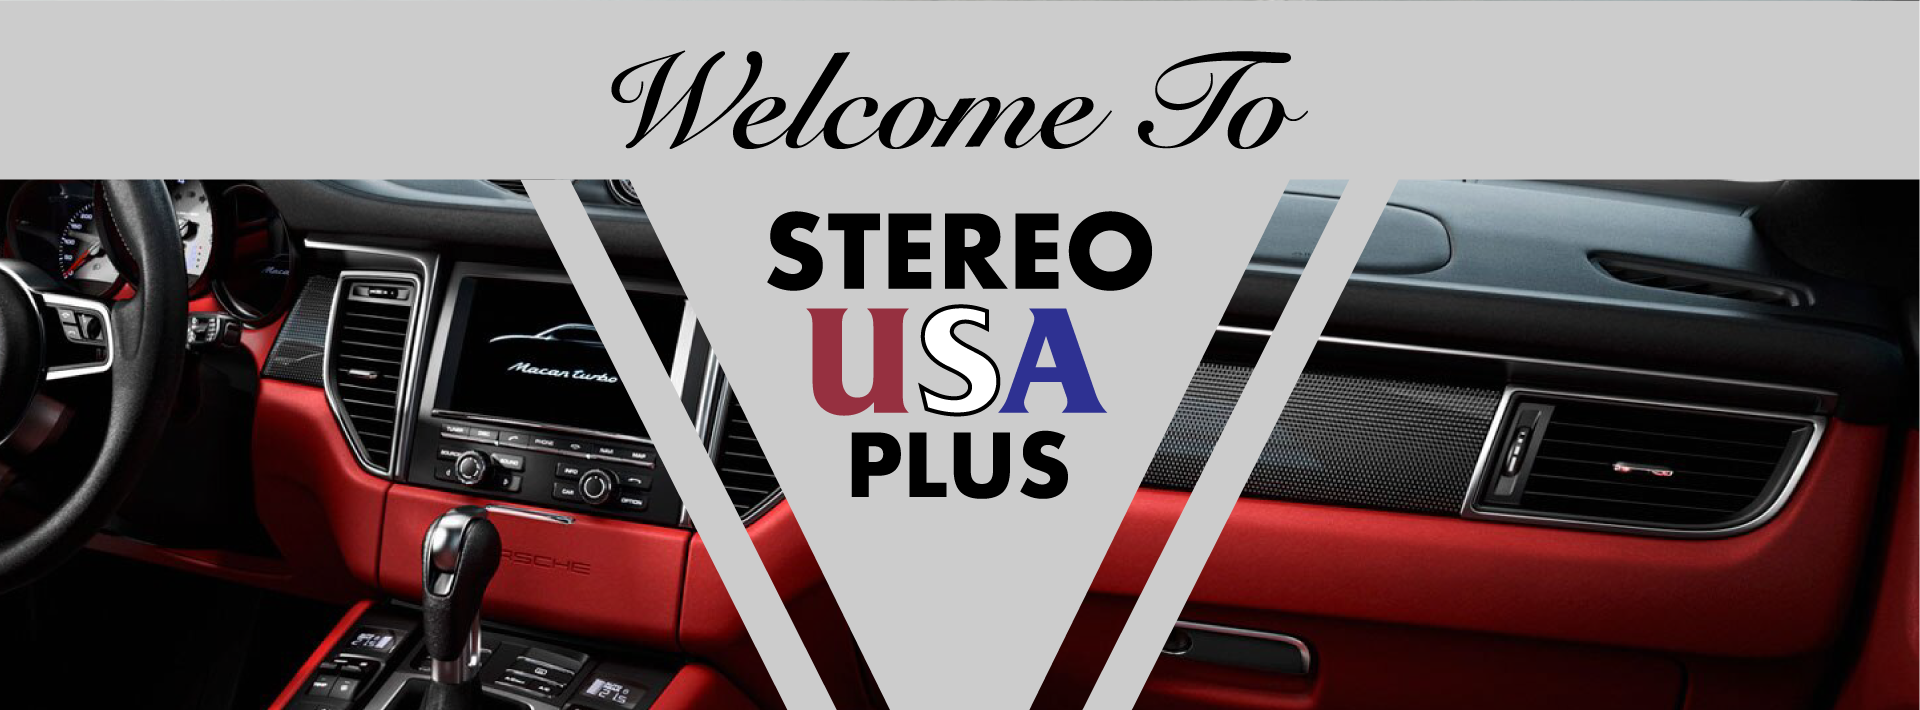 Stereo USA Plus welcome image 2